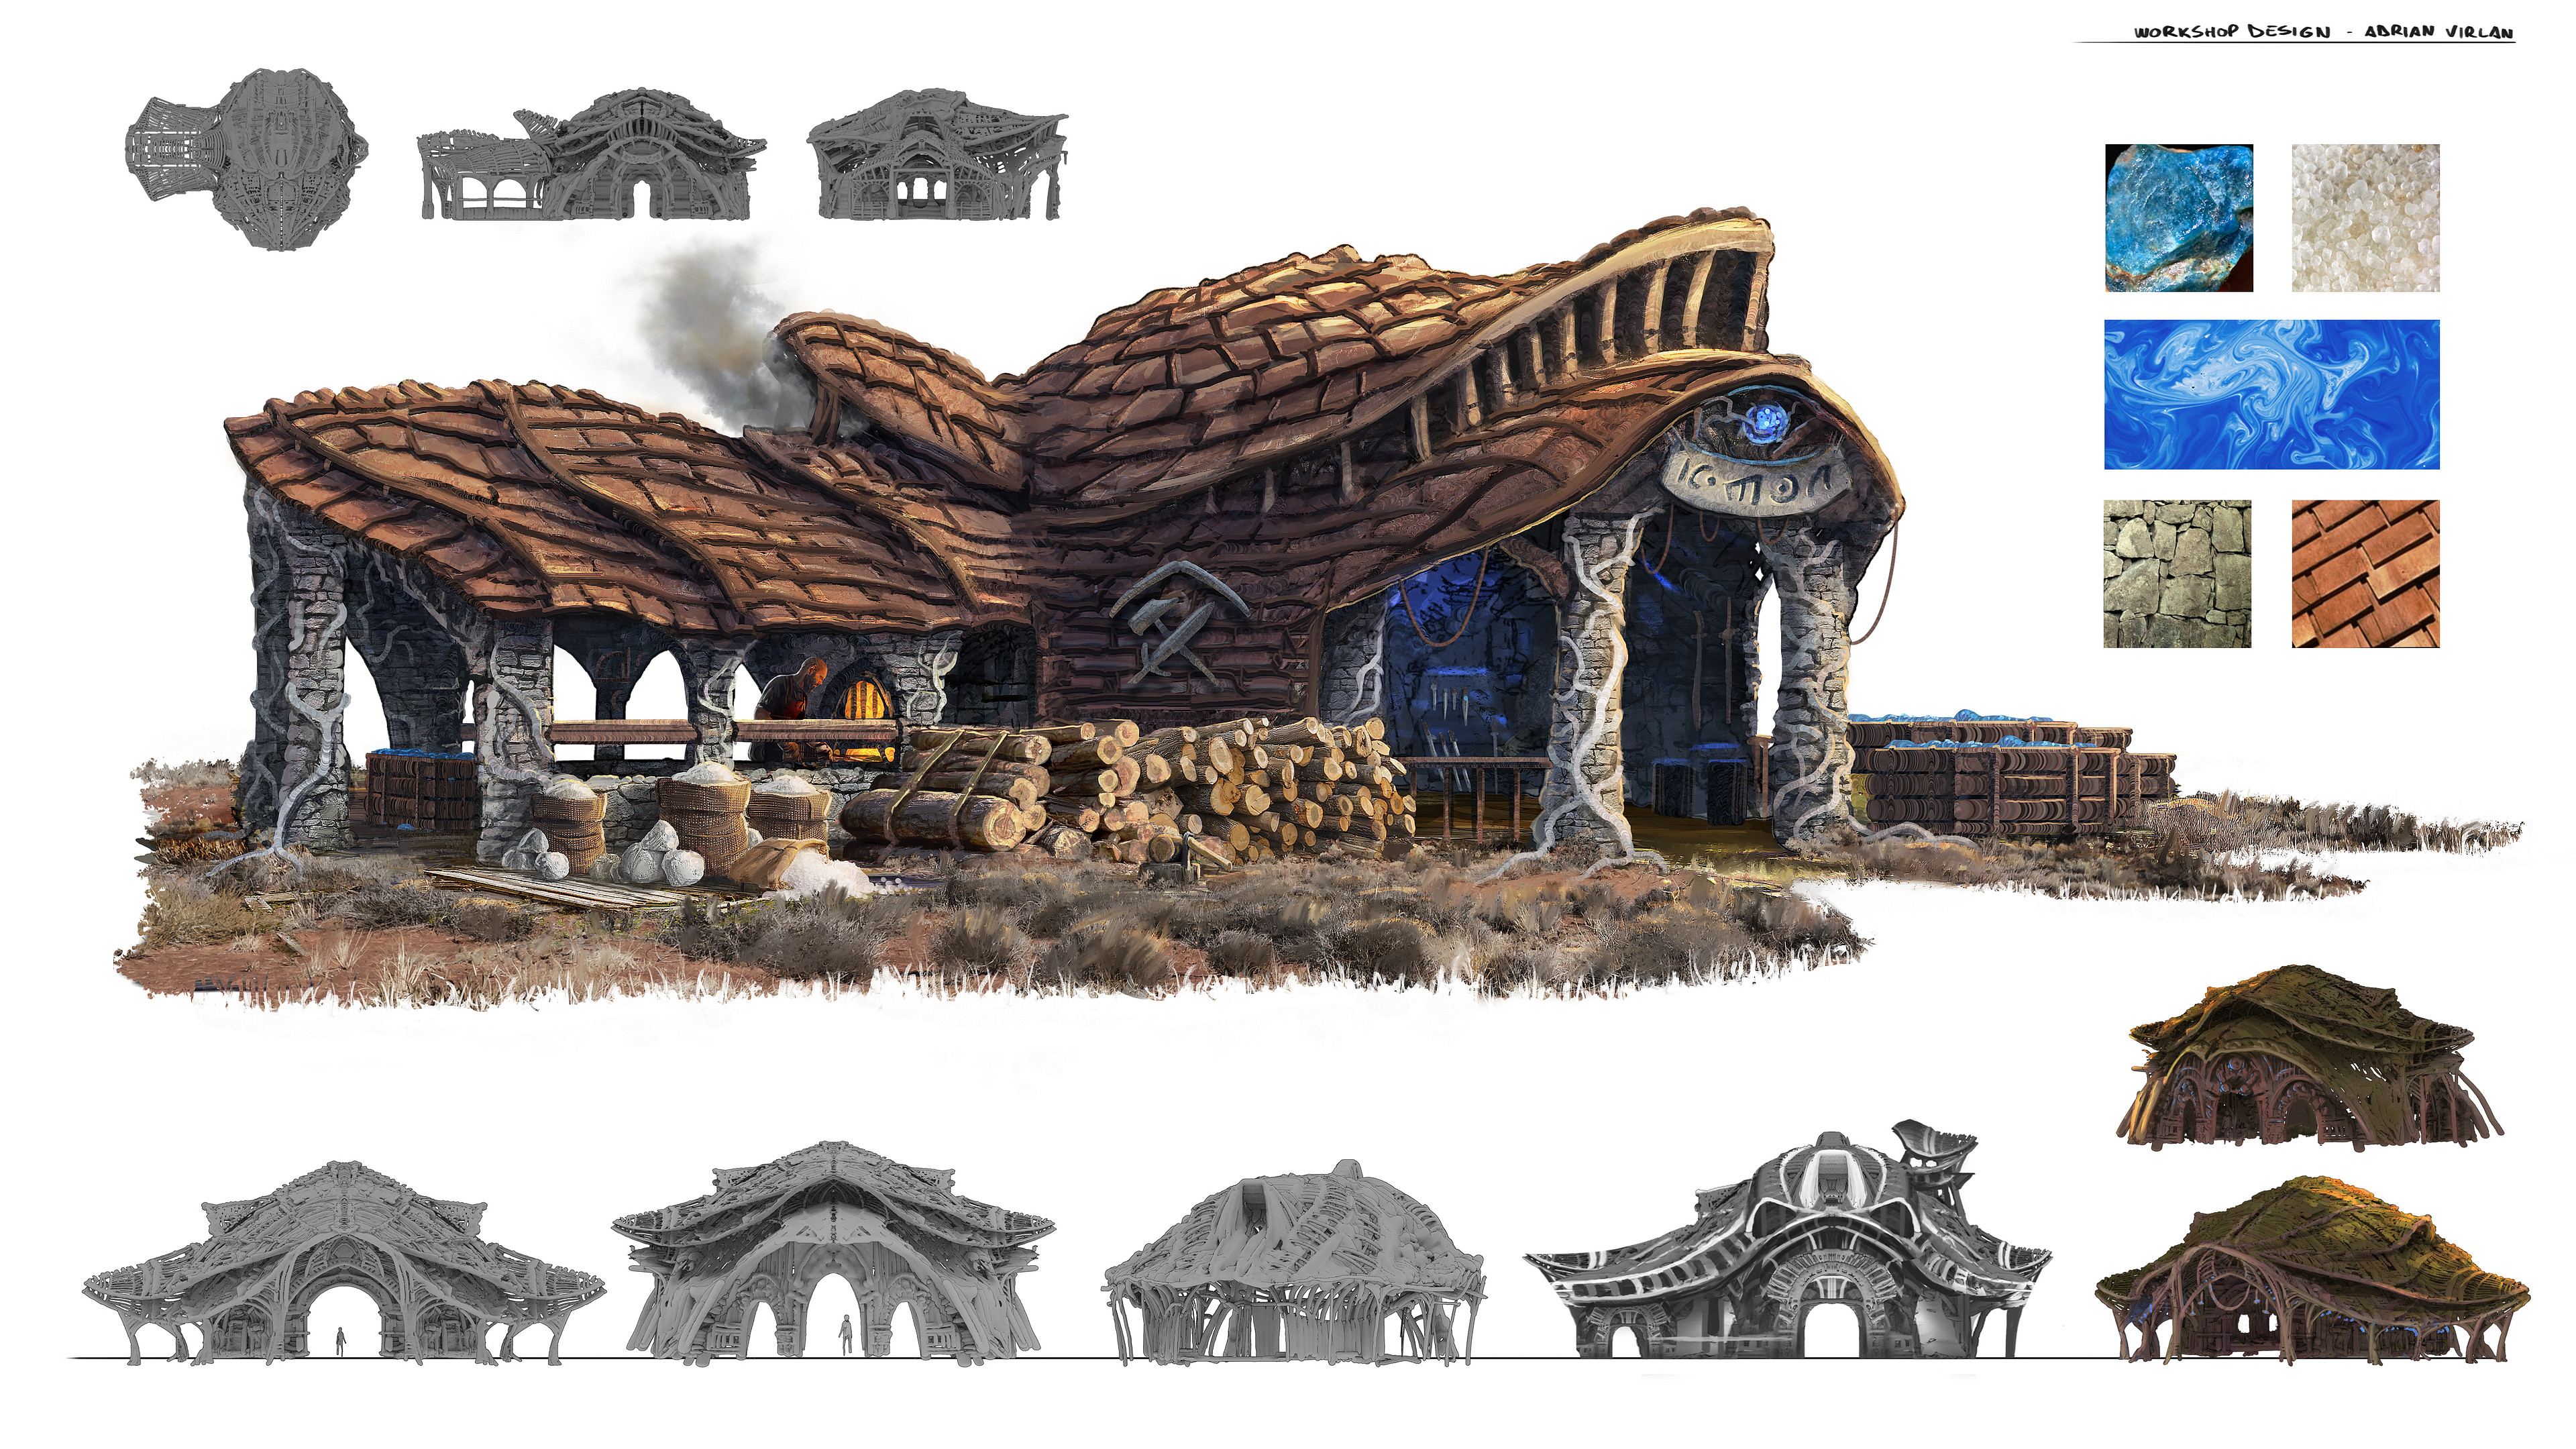 Design sheet for the entire building, textures and thumbnails included as reference to previous steps of design exploration stages.